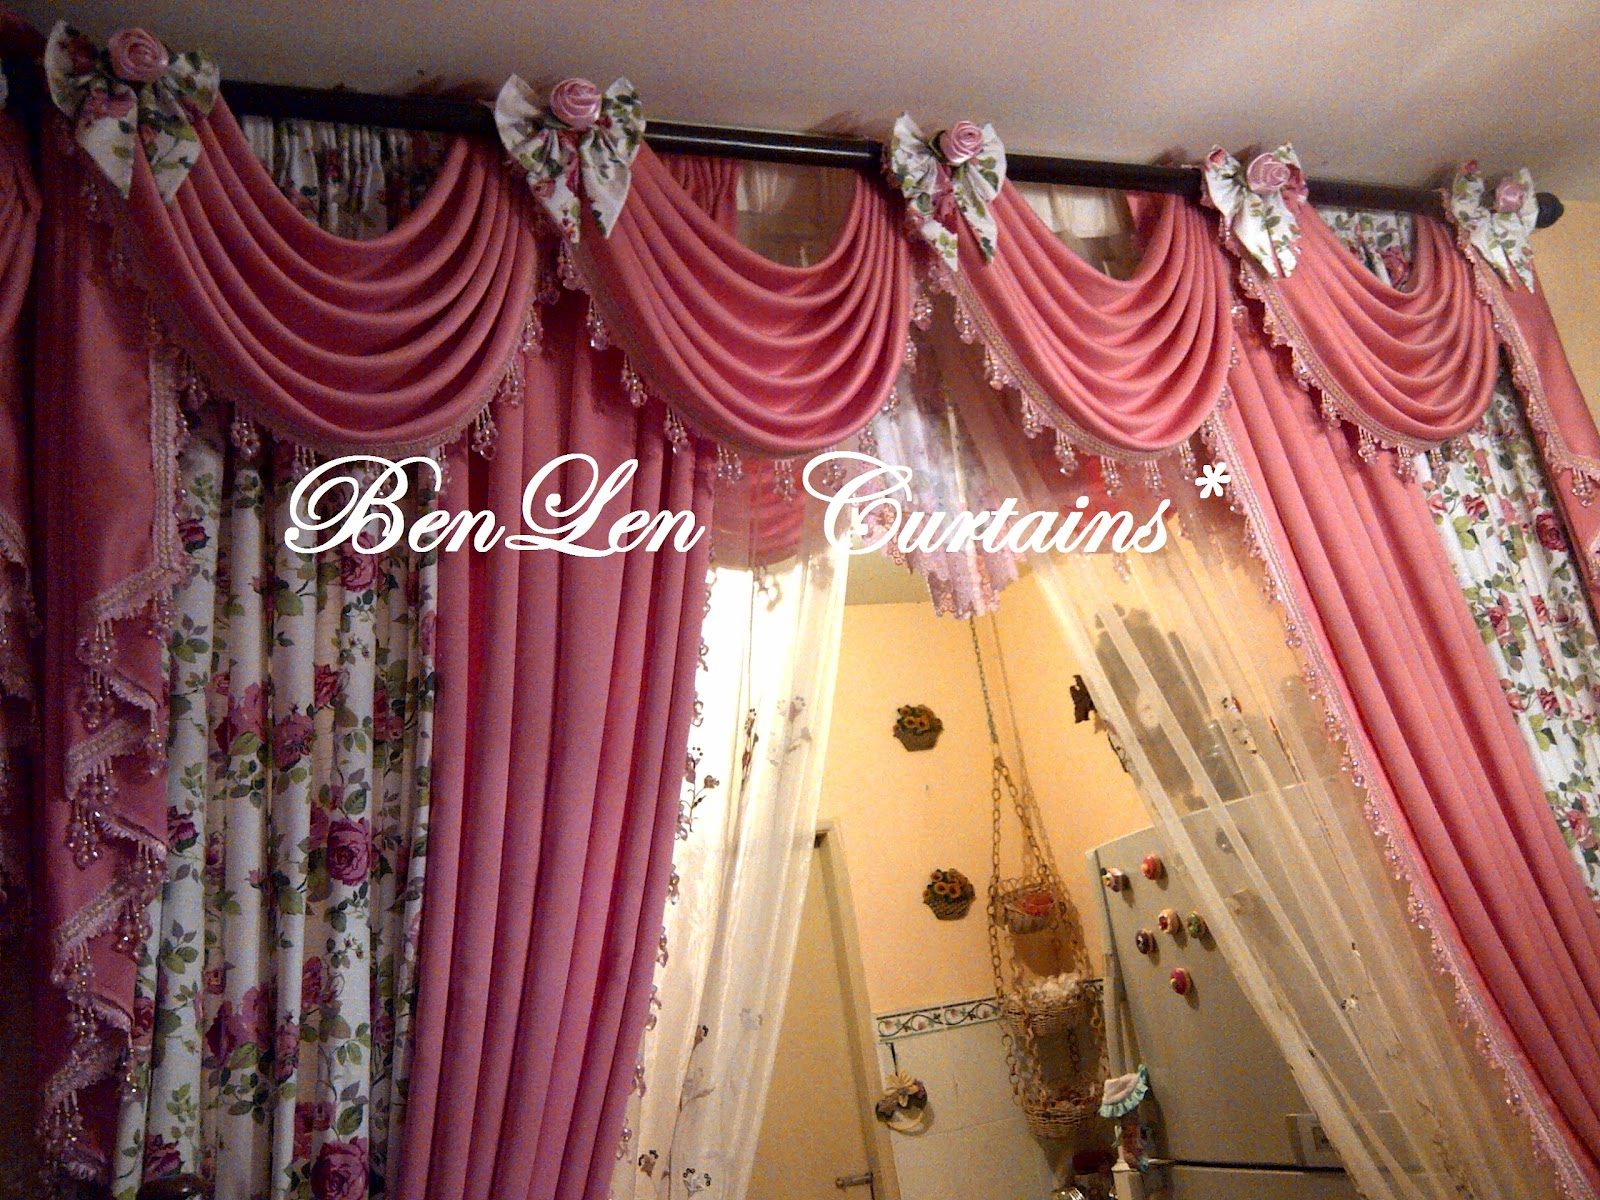 BenLen Curtains *: Scallop with ribbon roses (Lilit)